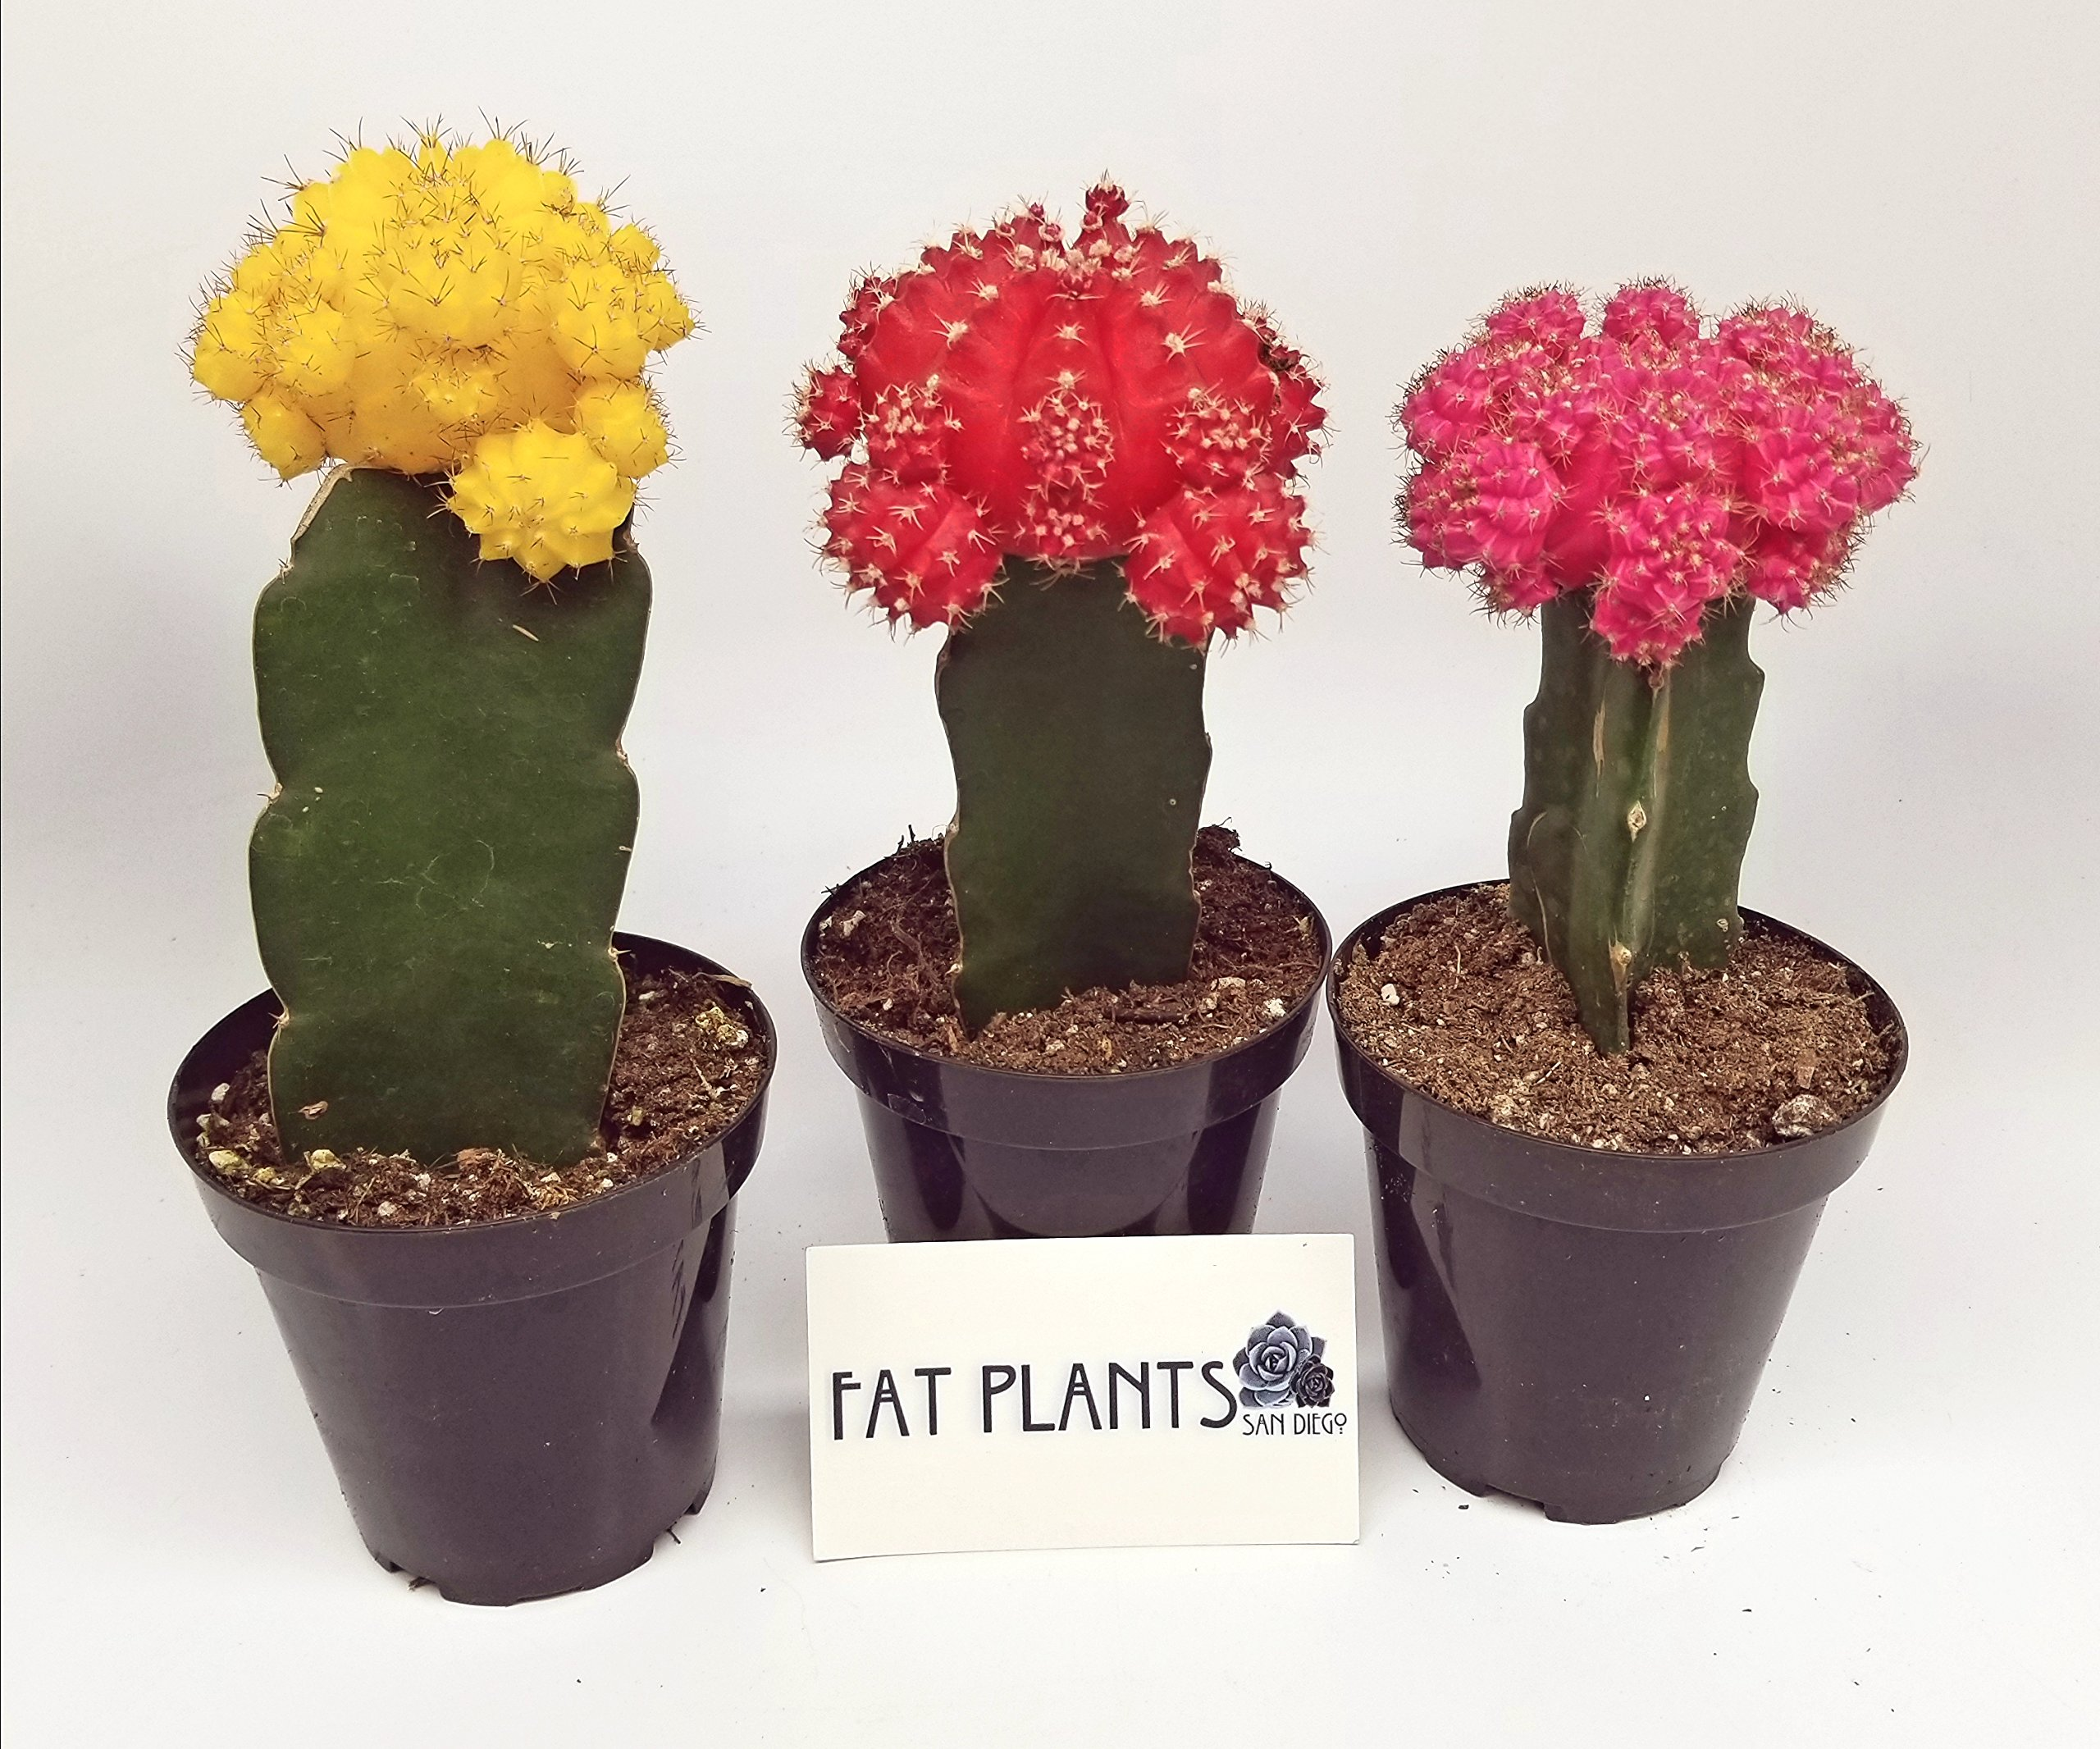 Fat Plants San Diego Grafted Moon Cactus Succulent Plants (3, Multi)